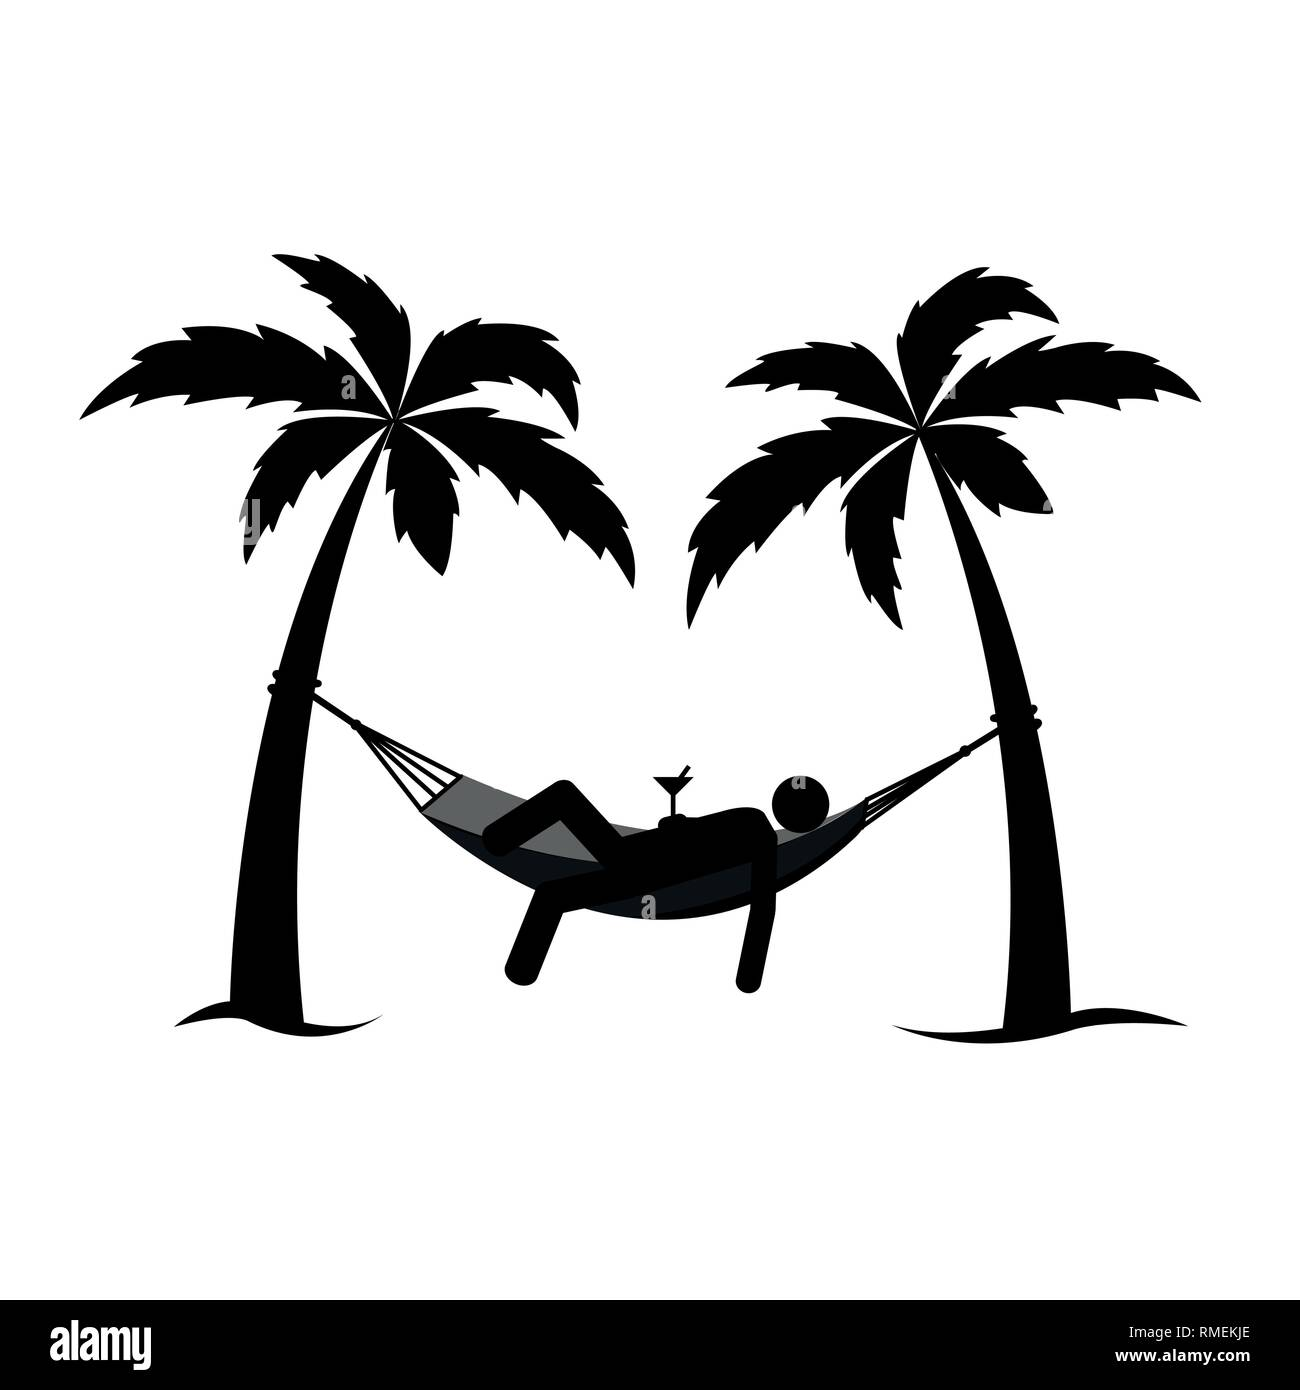 man in a hammock between palms pictogram vector illustration EPS10 - Stock Image